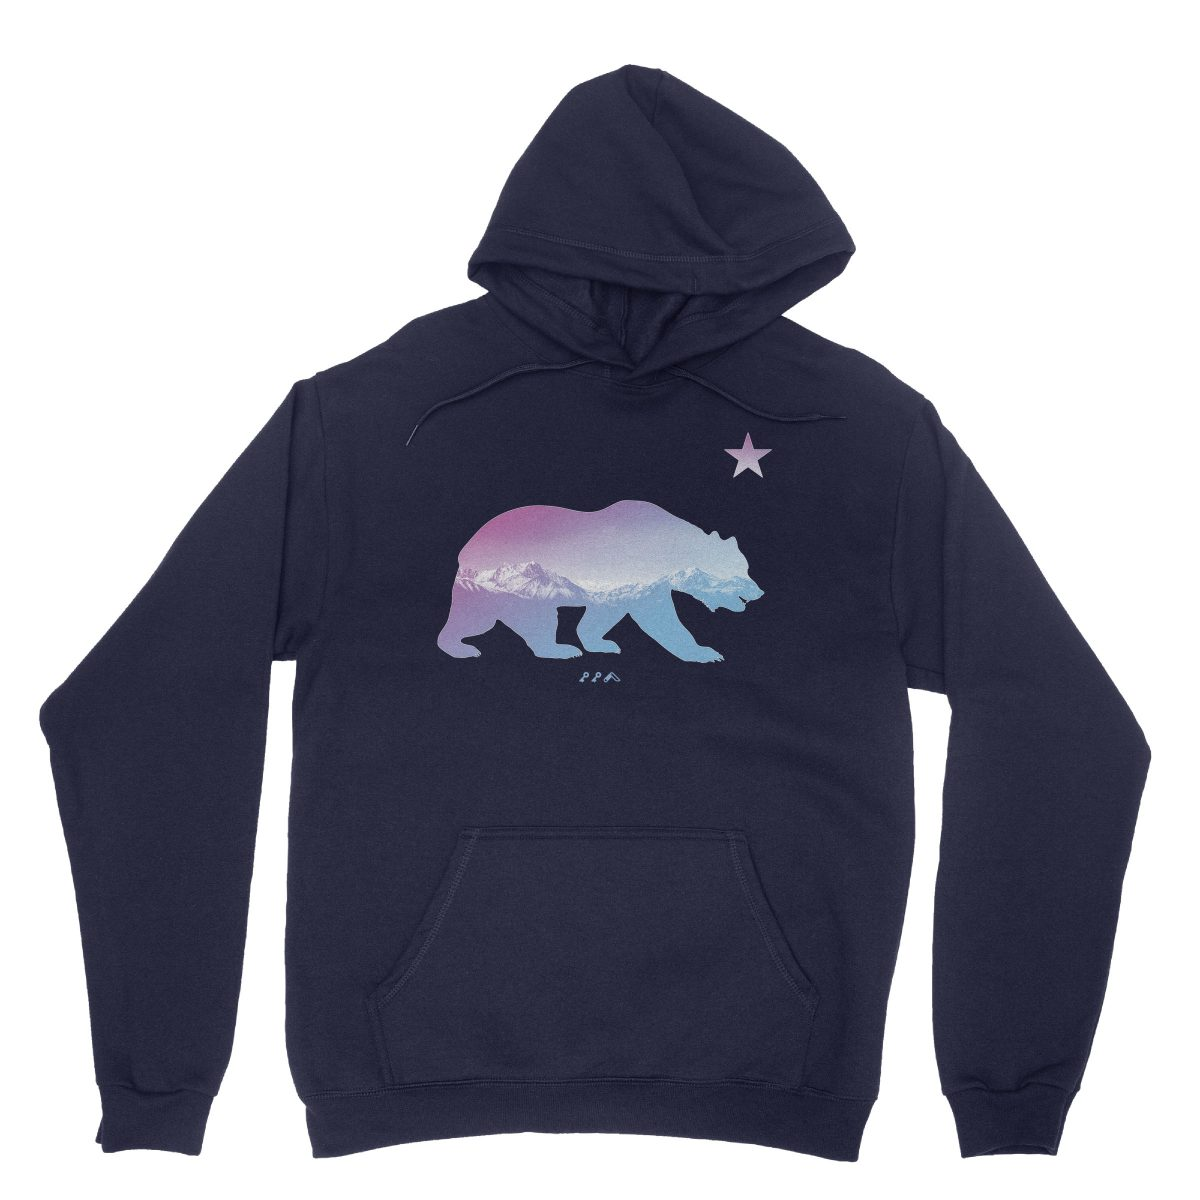 """BARE MOUNTAINS"" california bear hoodies in navy by kikicutt"